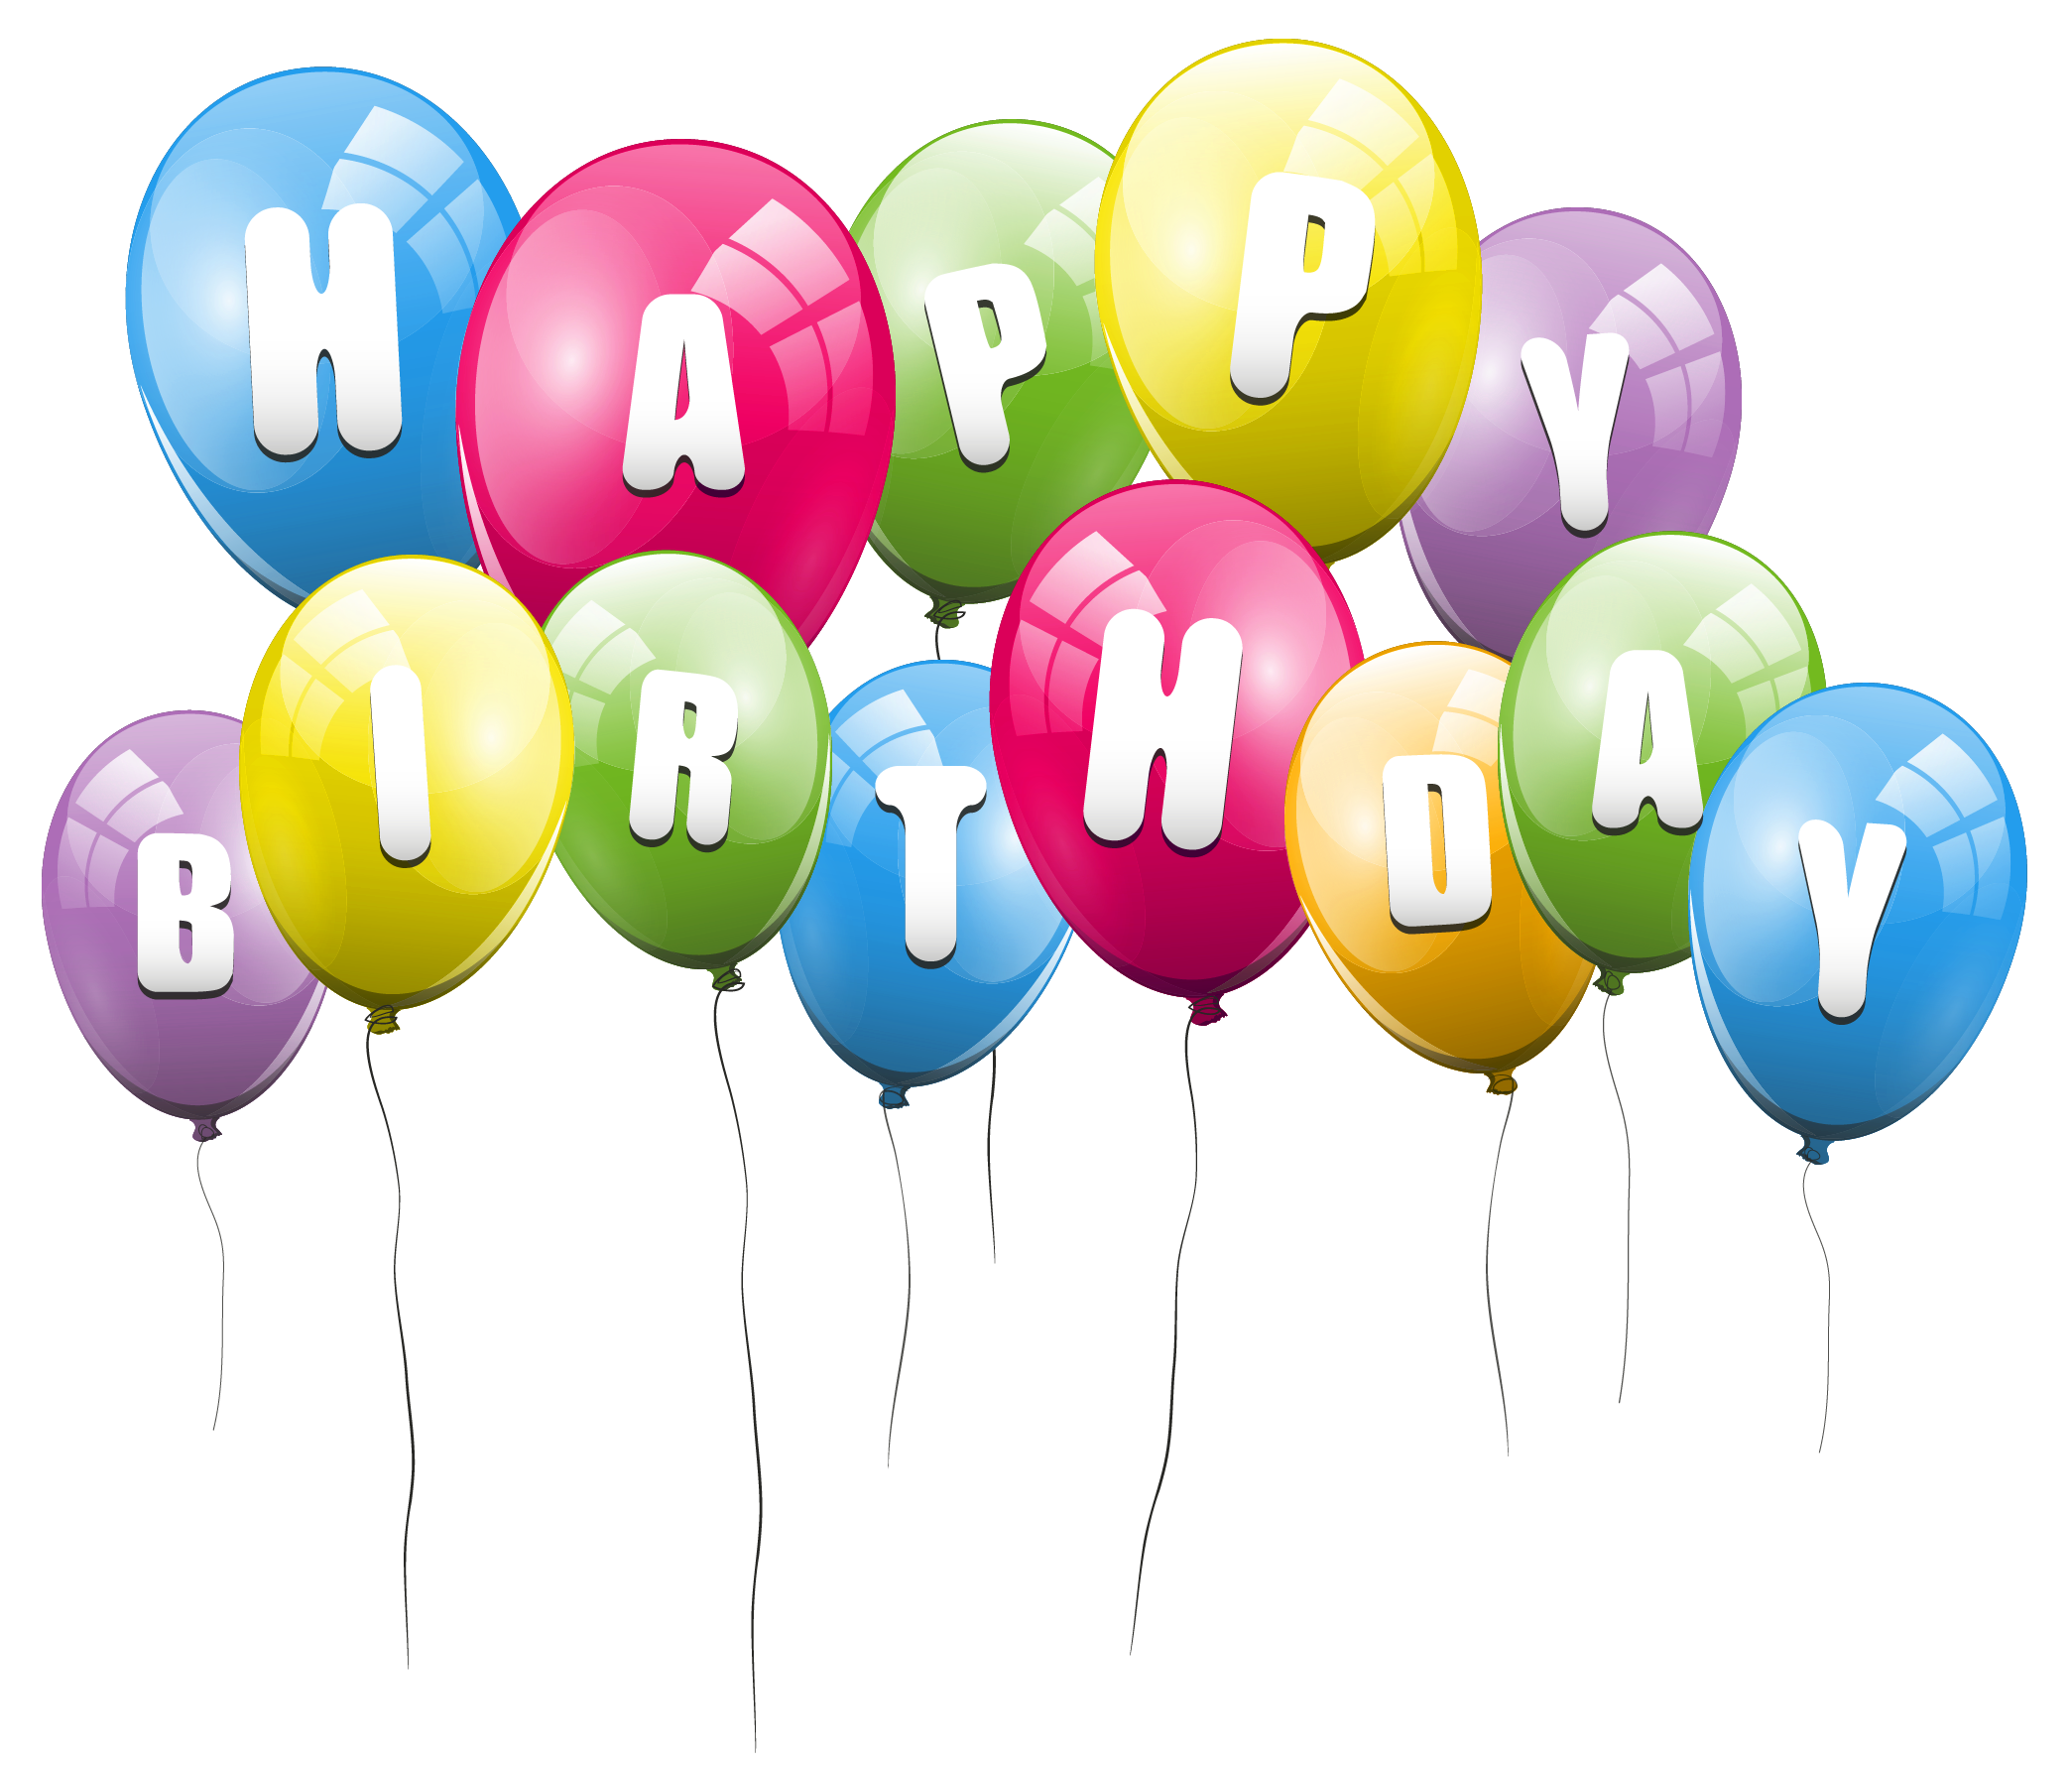 Happy Birthday Balloons Png Free Happy Birthday Balloons Png Transparent Images 105 Pngio